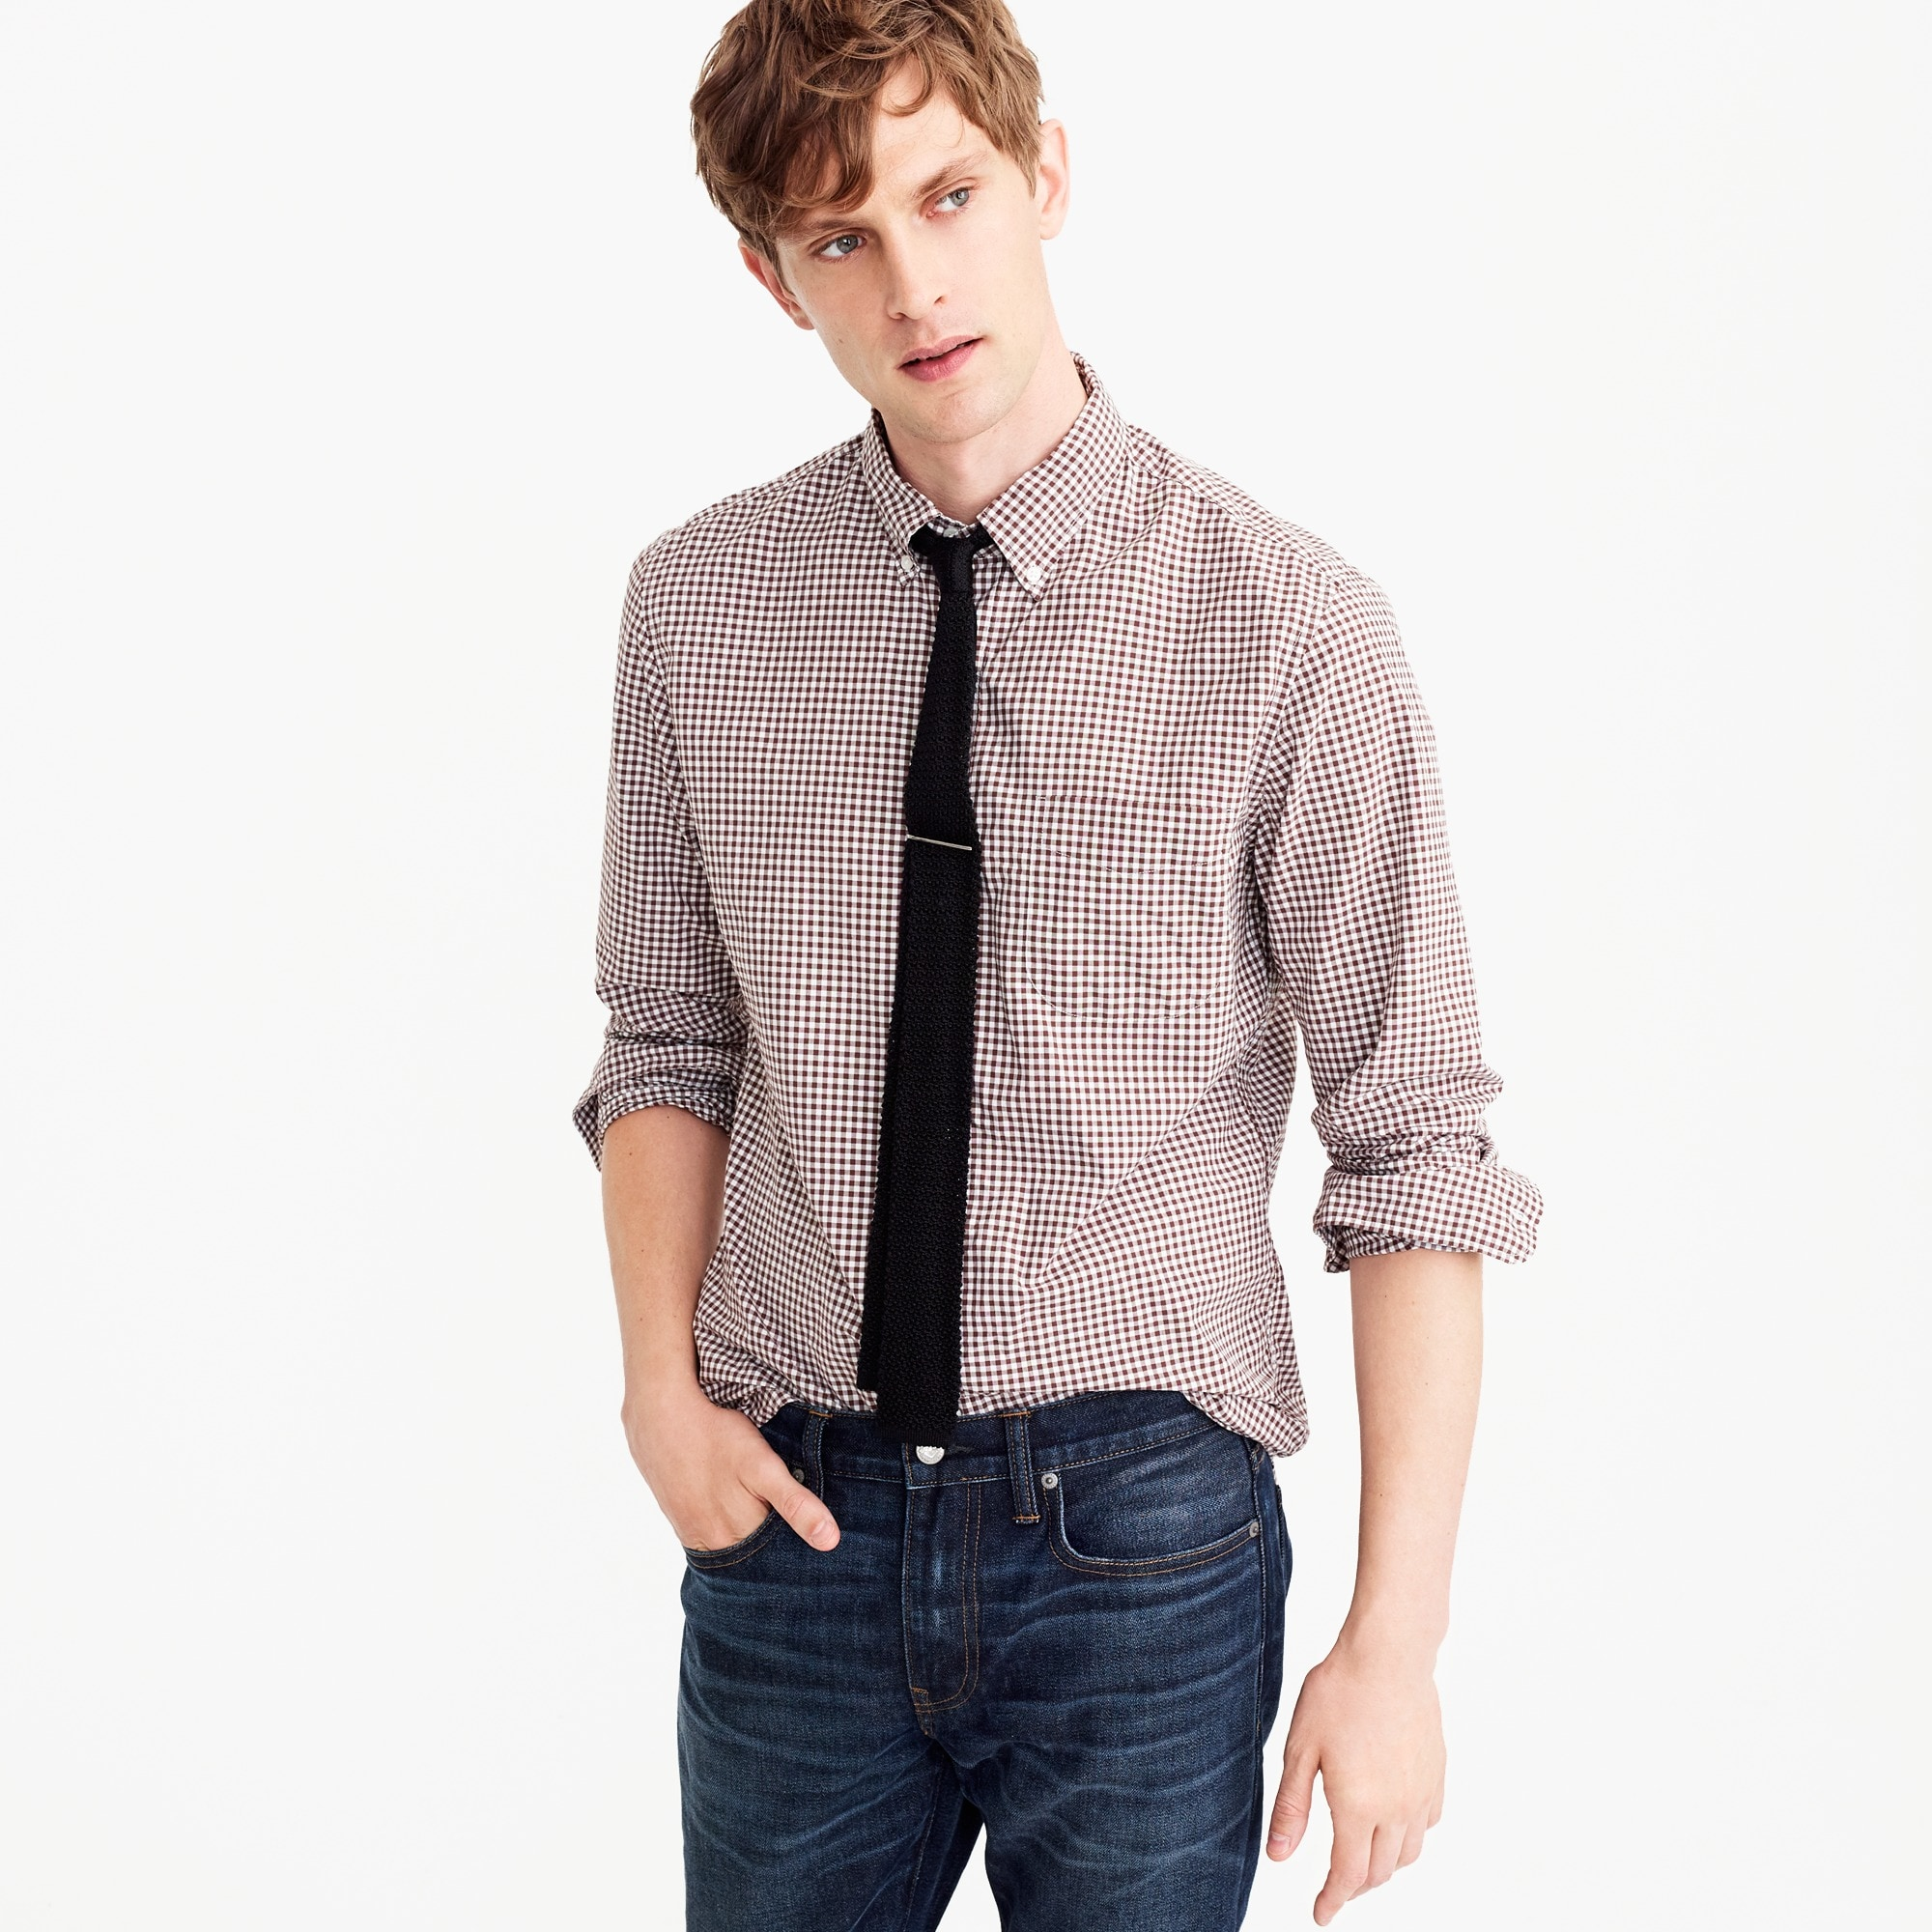 Image 1 for Tall Secret Wash shirt in classic gingham